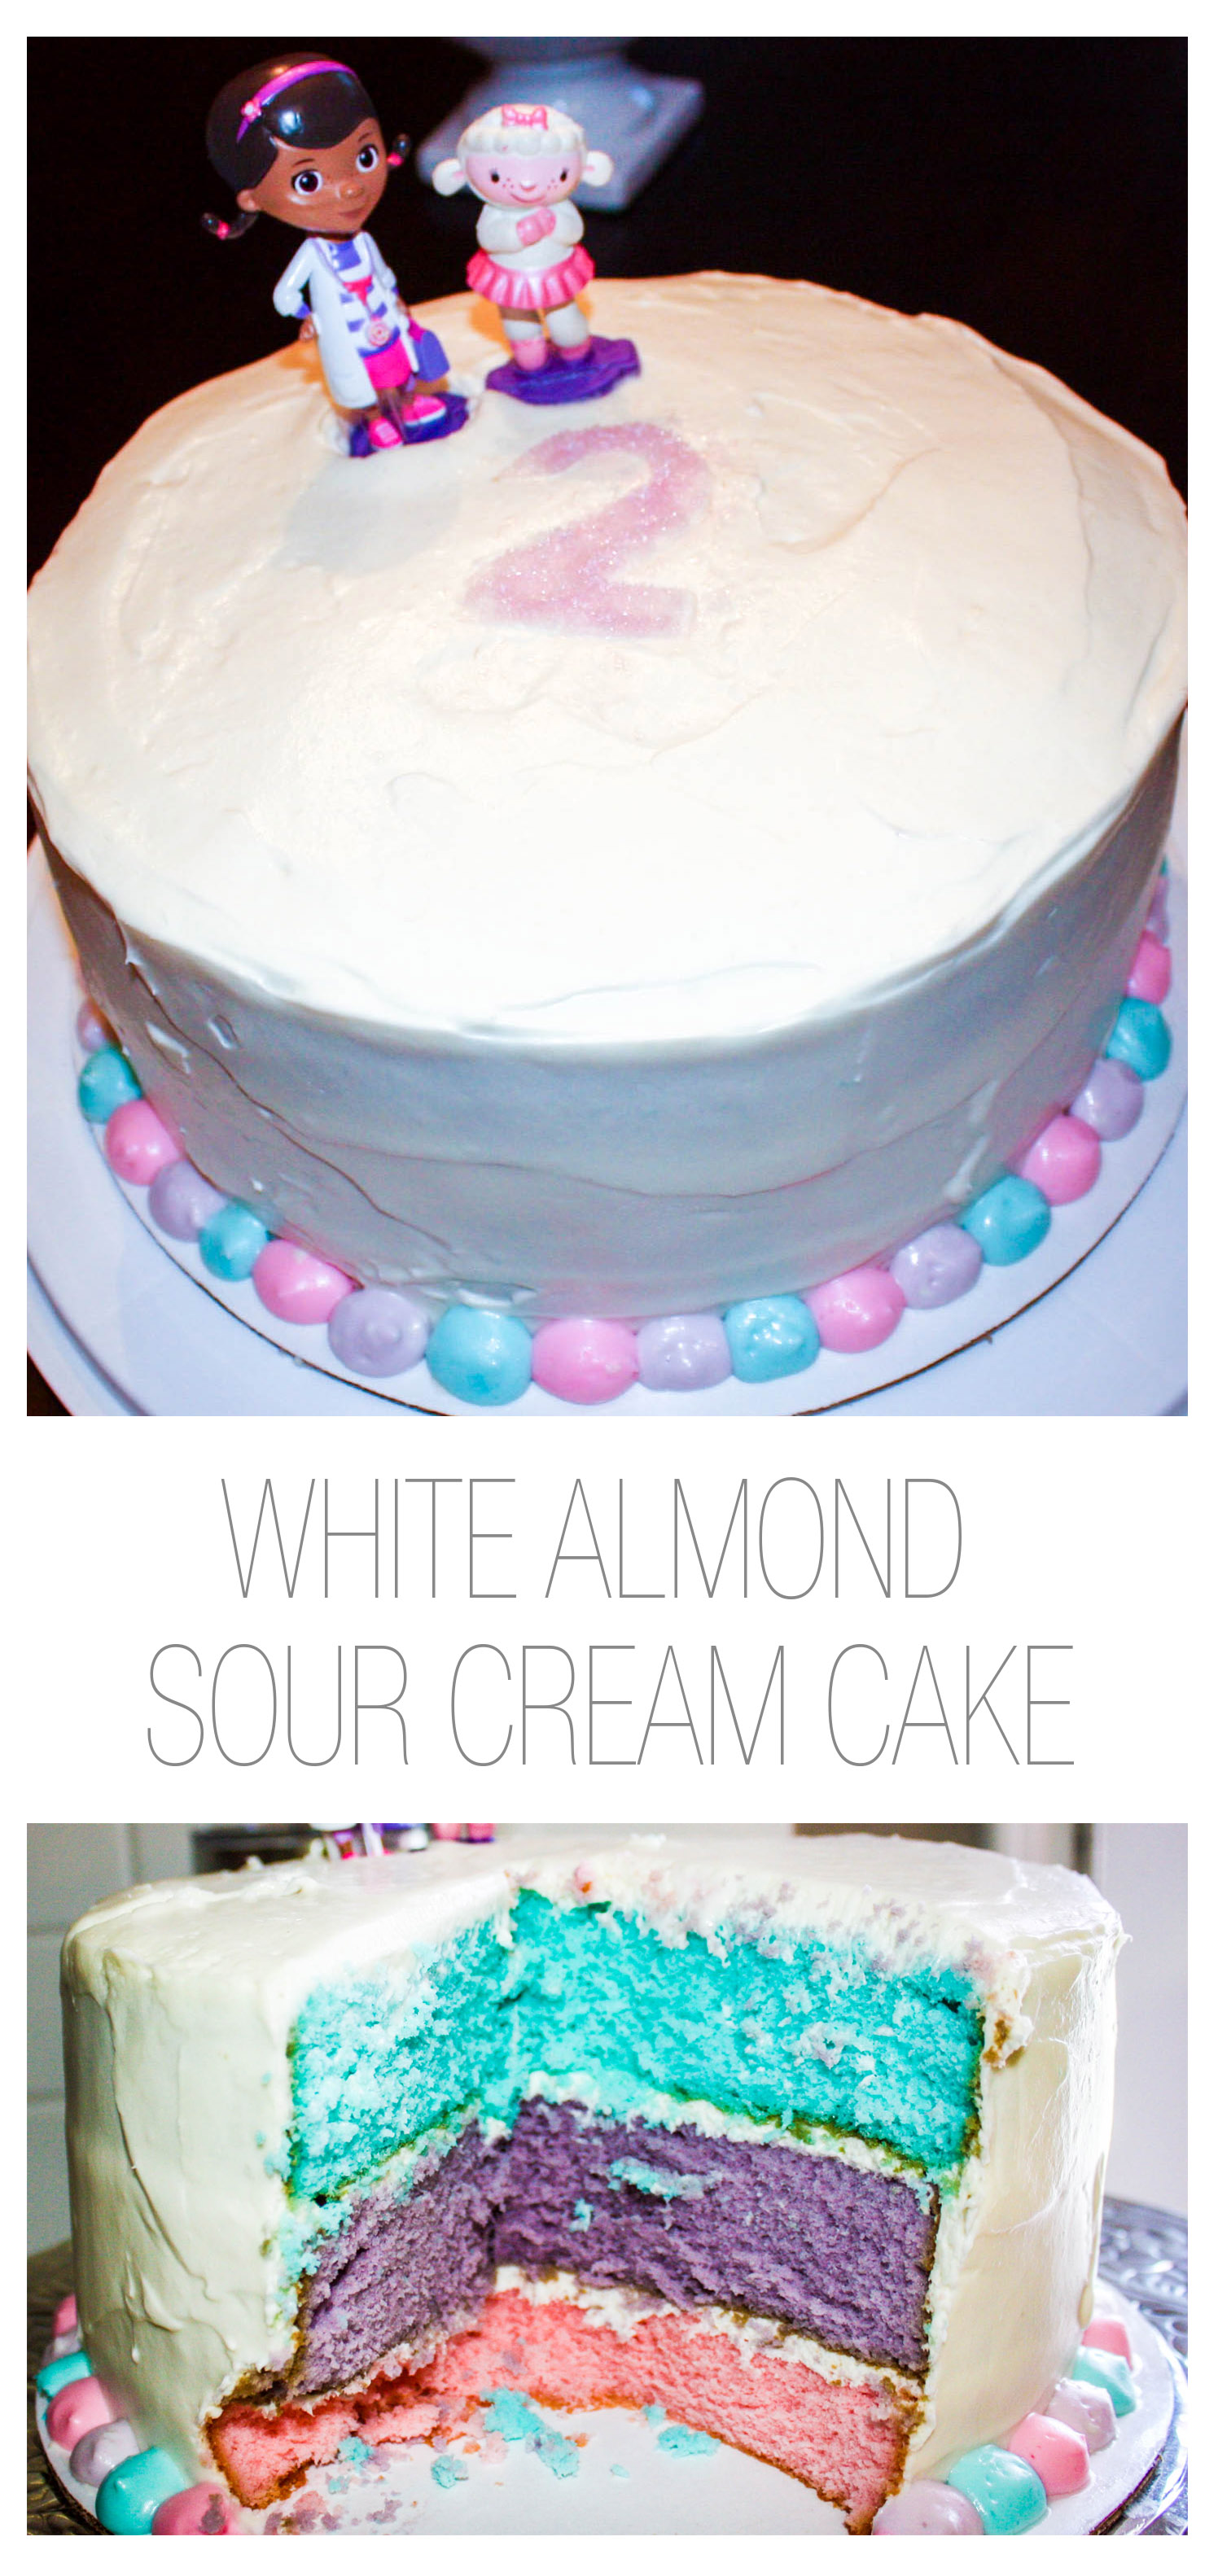 White Almond Sour Cream Cake with Piped Cream Cheese Frosting